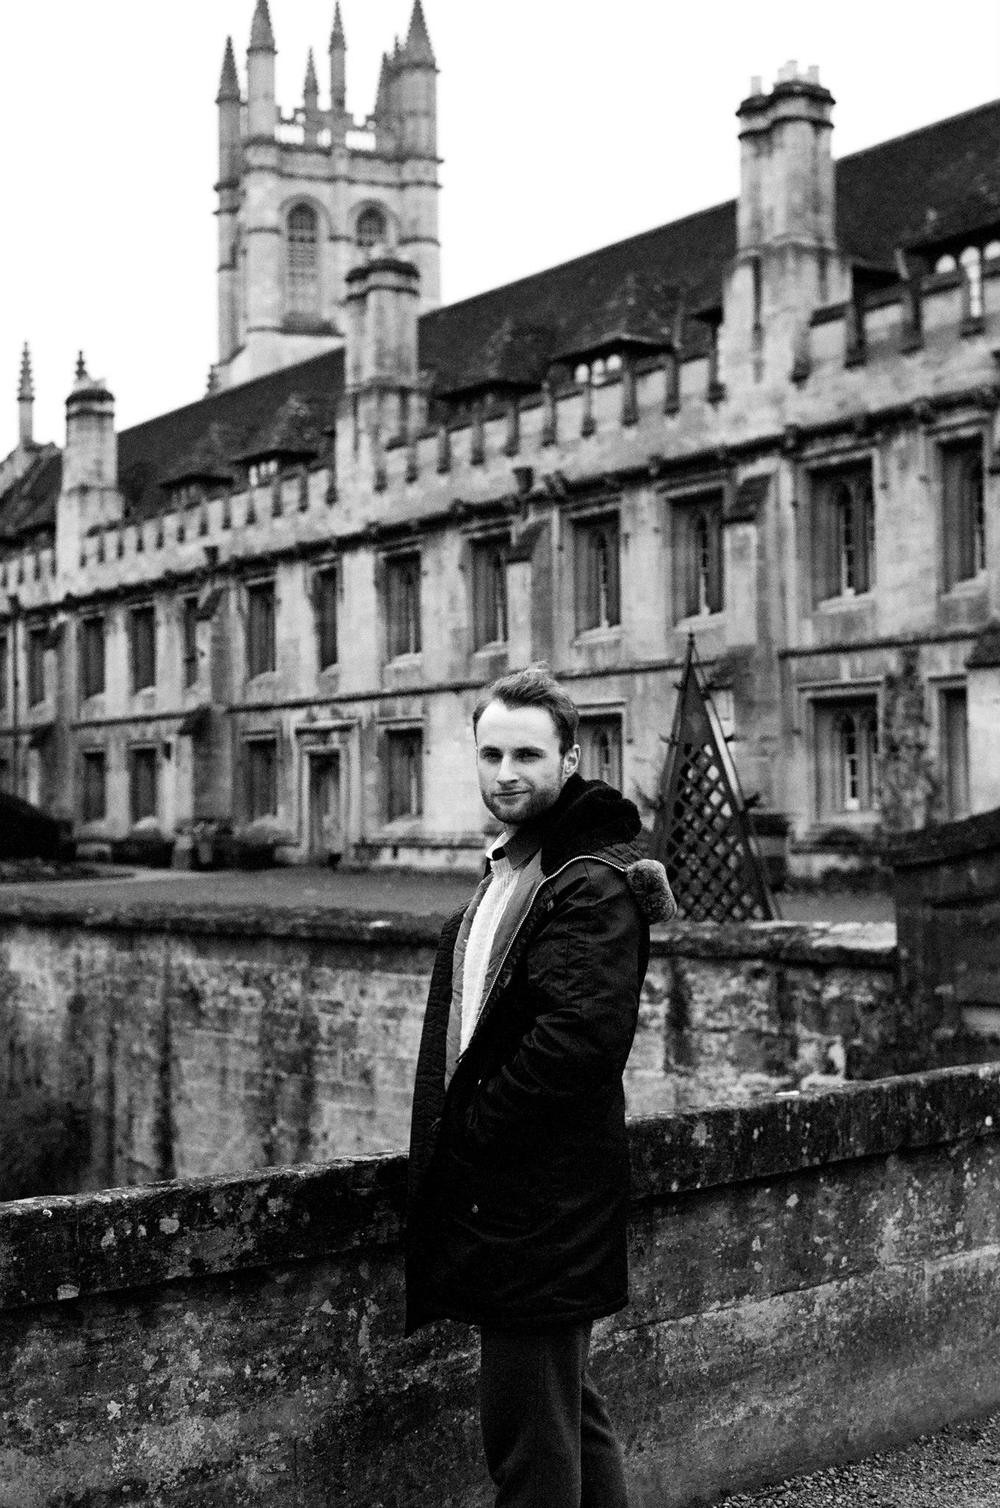 Peter Spalding, Daniel House's Director of Design, standing in front of Magdalen College, Oxford, classical architecture, medieval building, collegiate architecture, magdalen tower